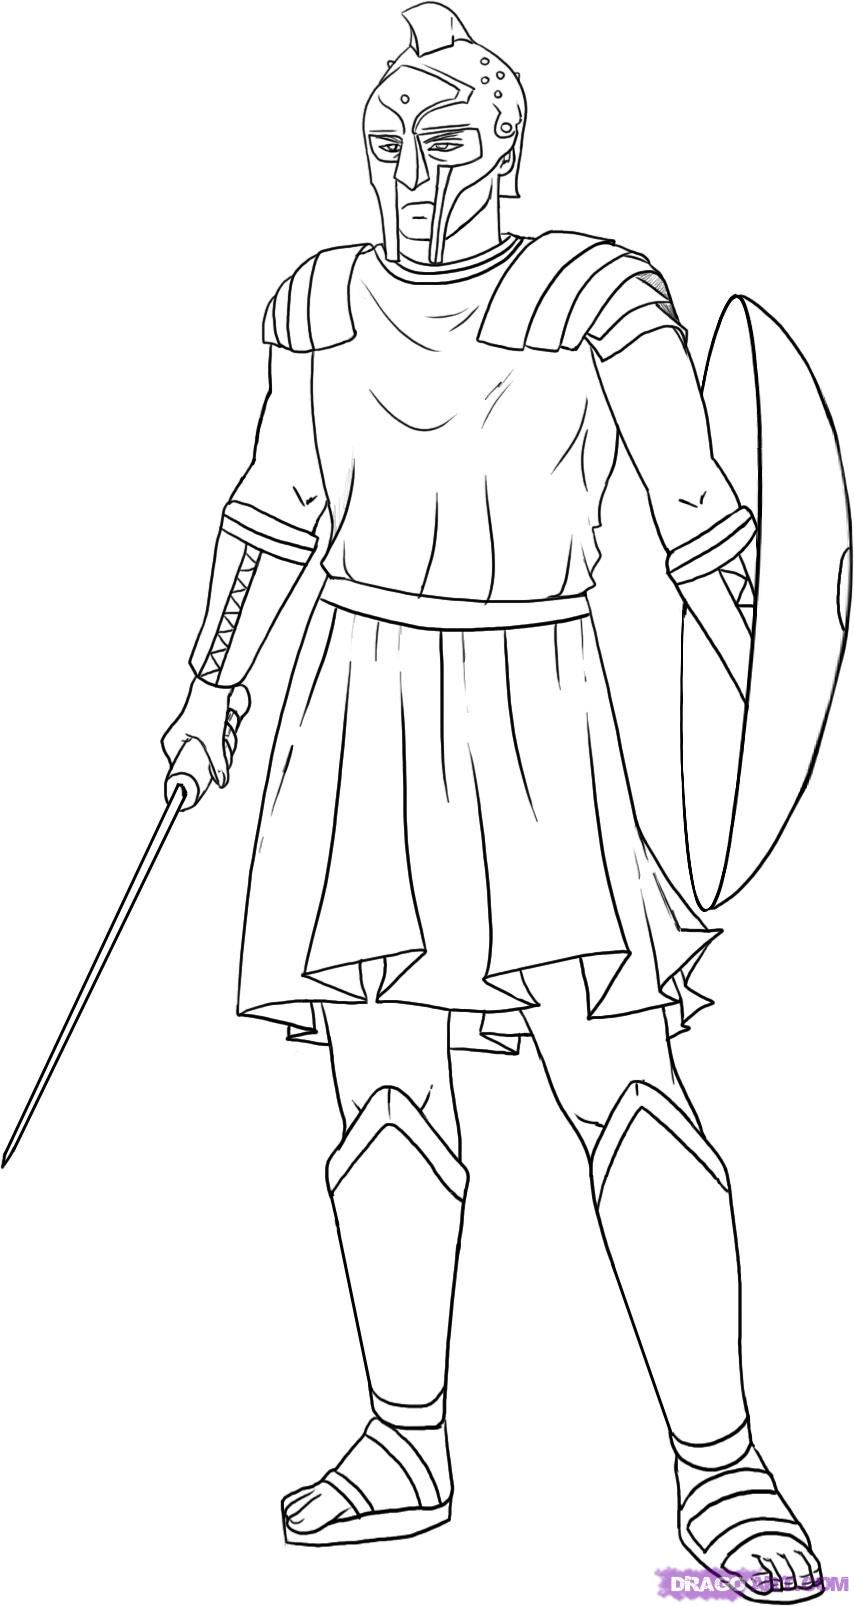 Use the form below to delete this How To Draw A Roman